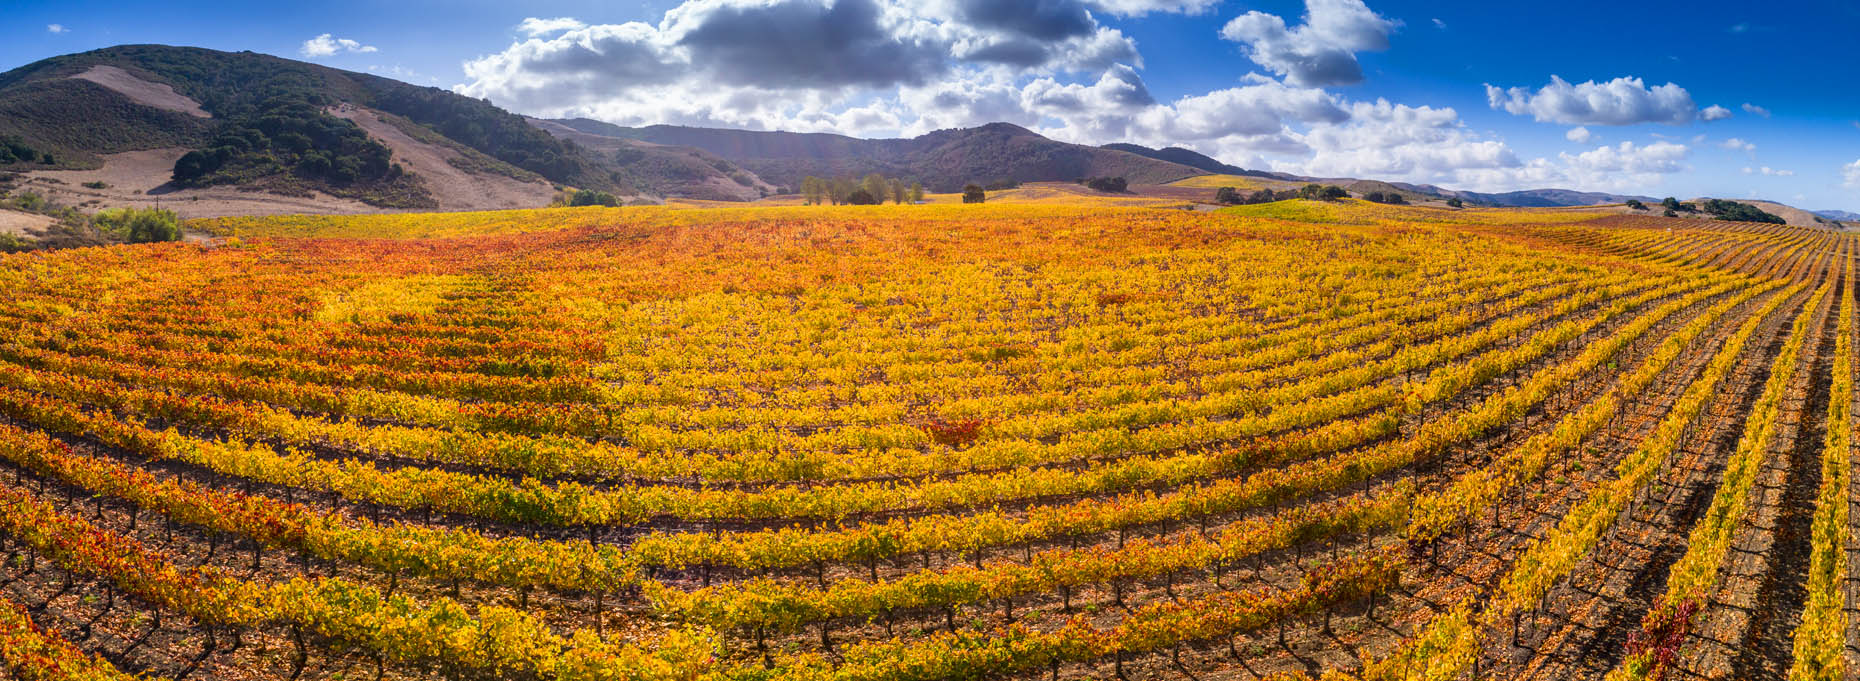 Aerial_Vineyard_Pano